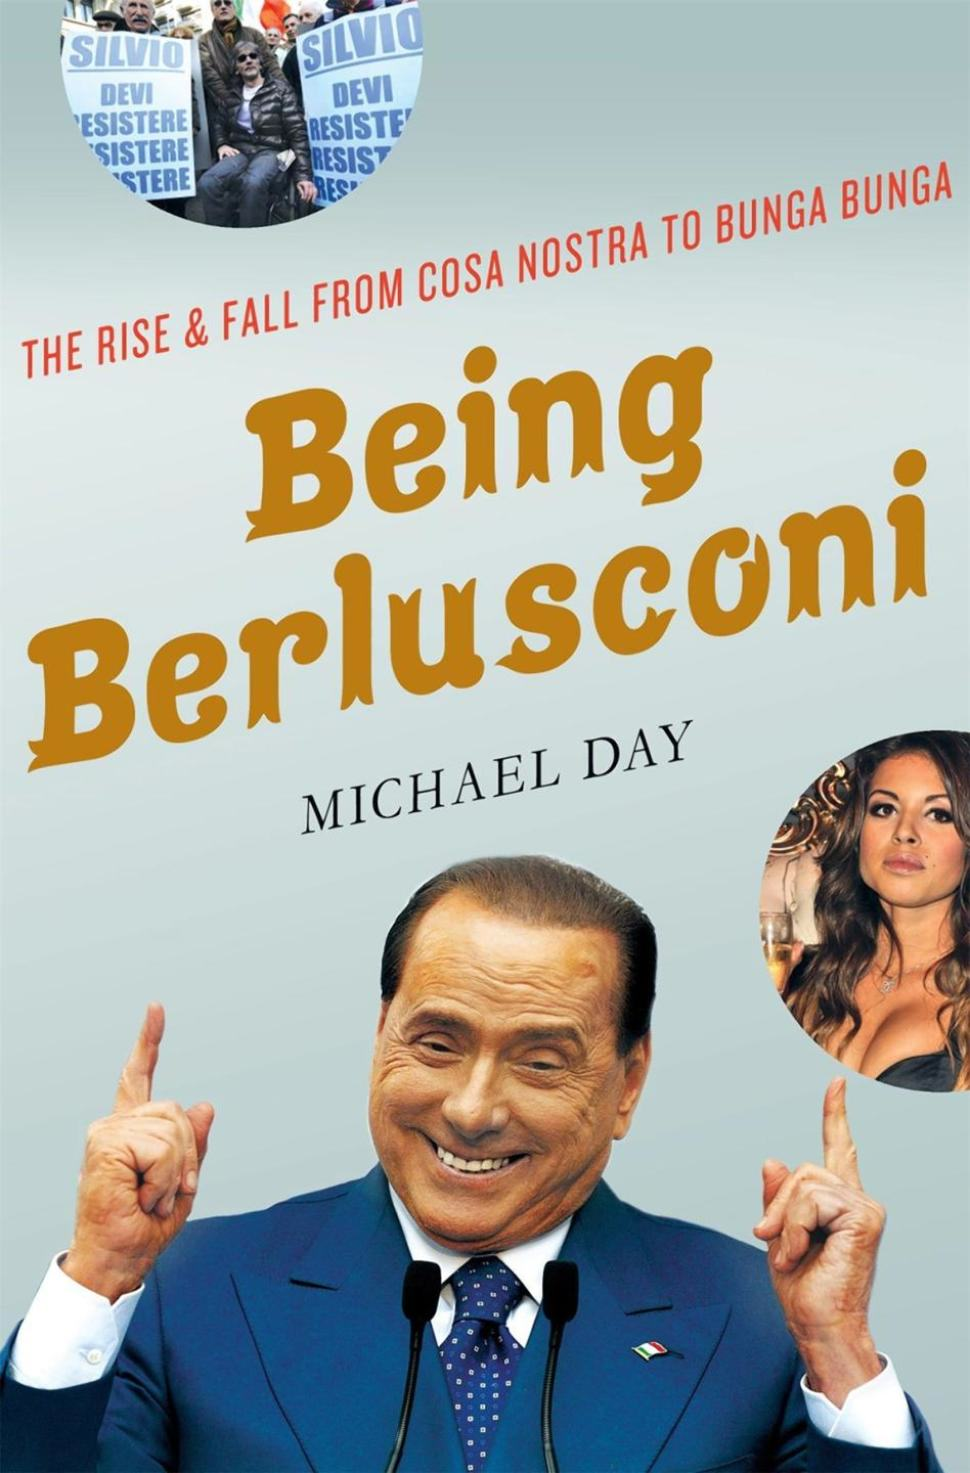 Silvio Berlusconi Had Women Kiss Penis Statue At His Sex Parties UNILAD bunga17